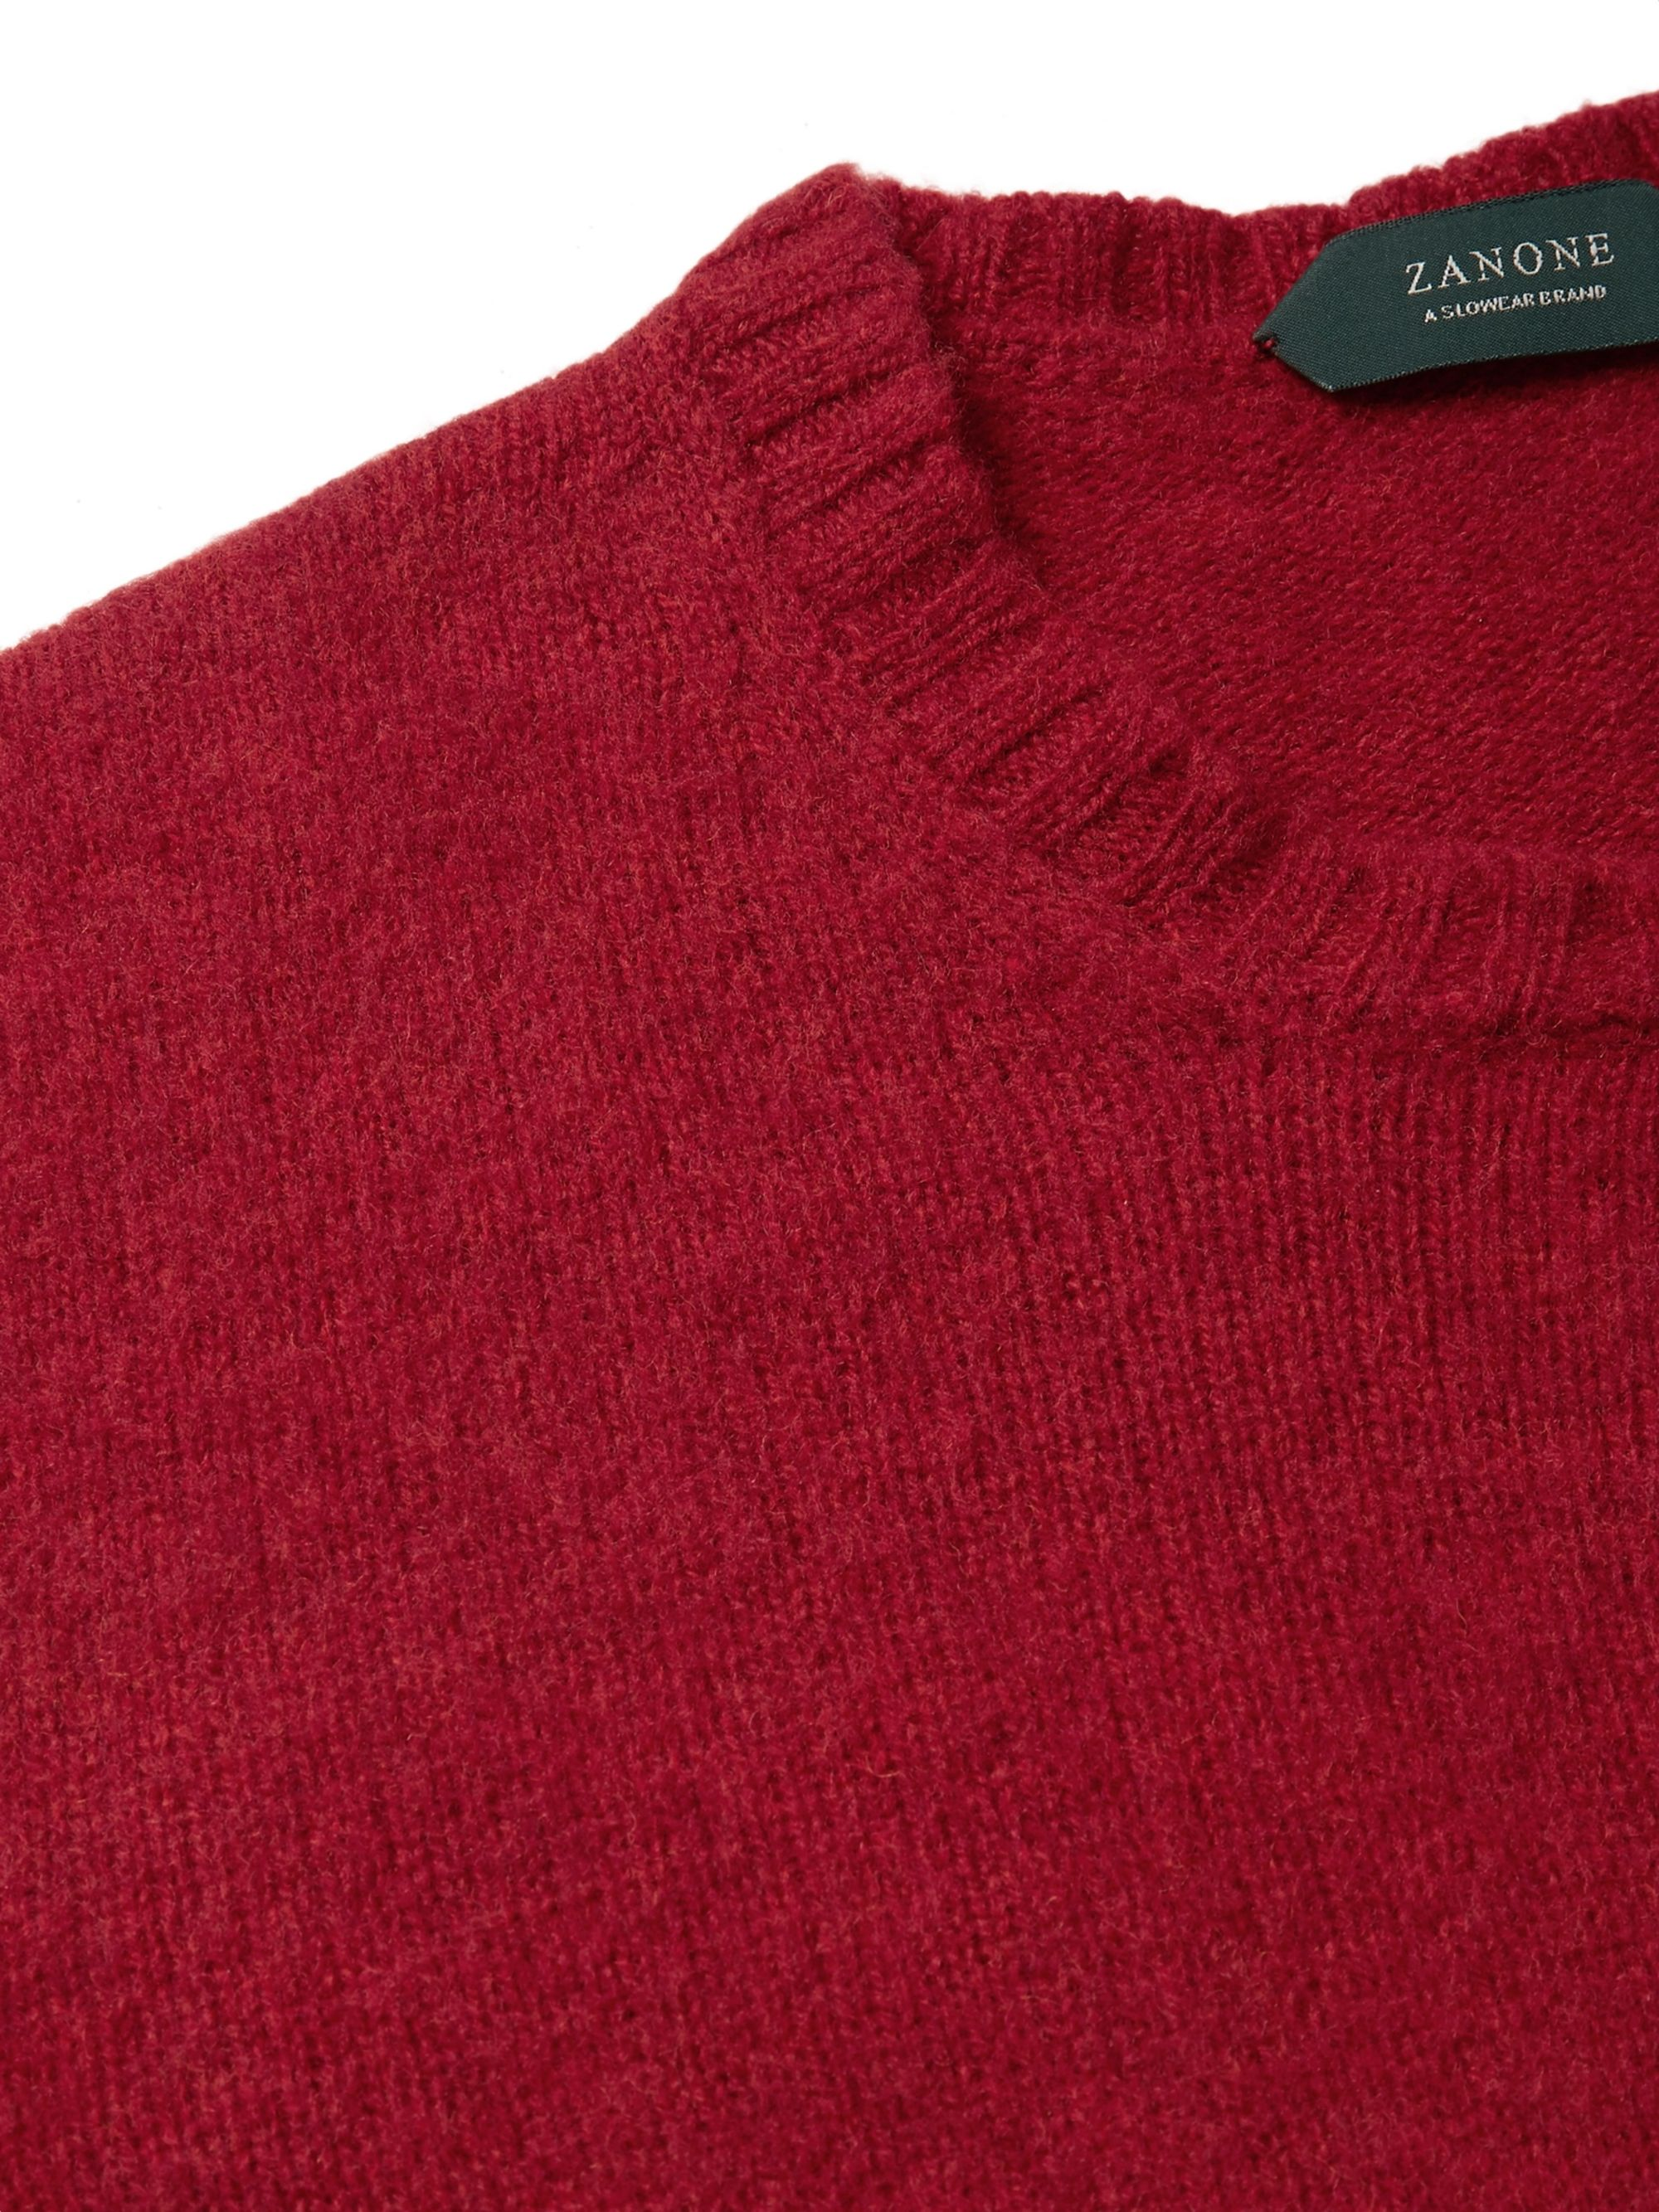 Incotex Slim-Fit Virgin Wool Sweater